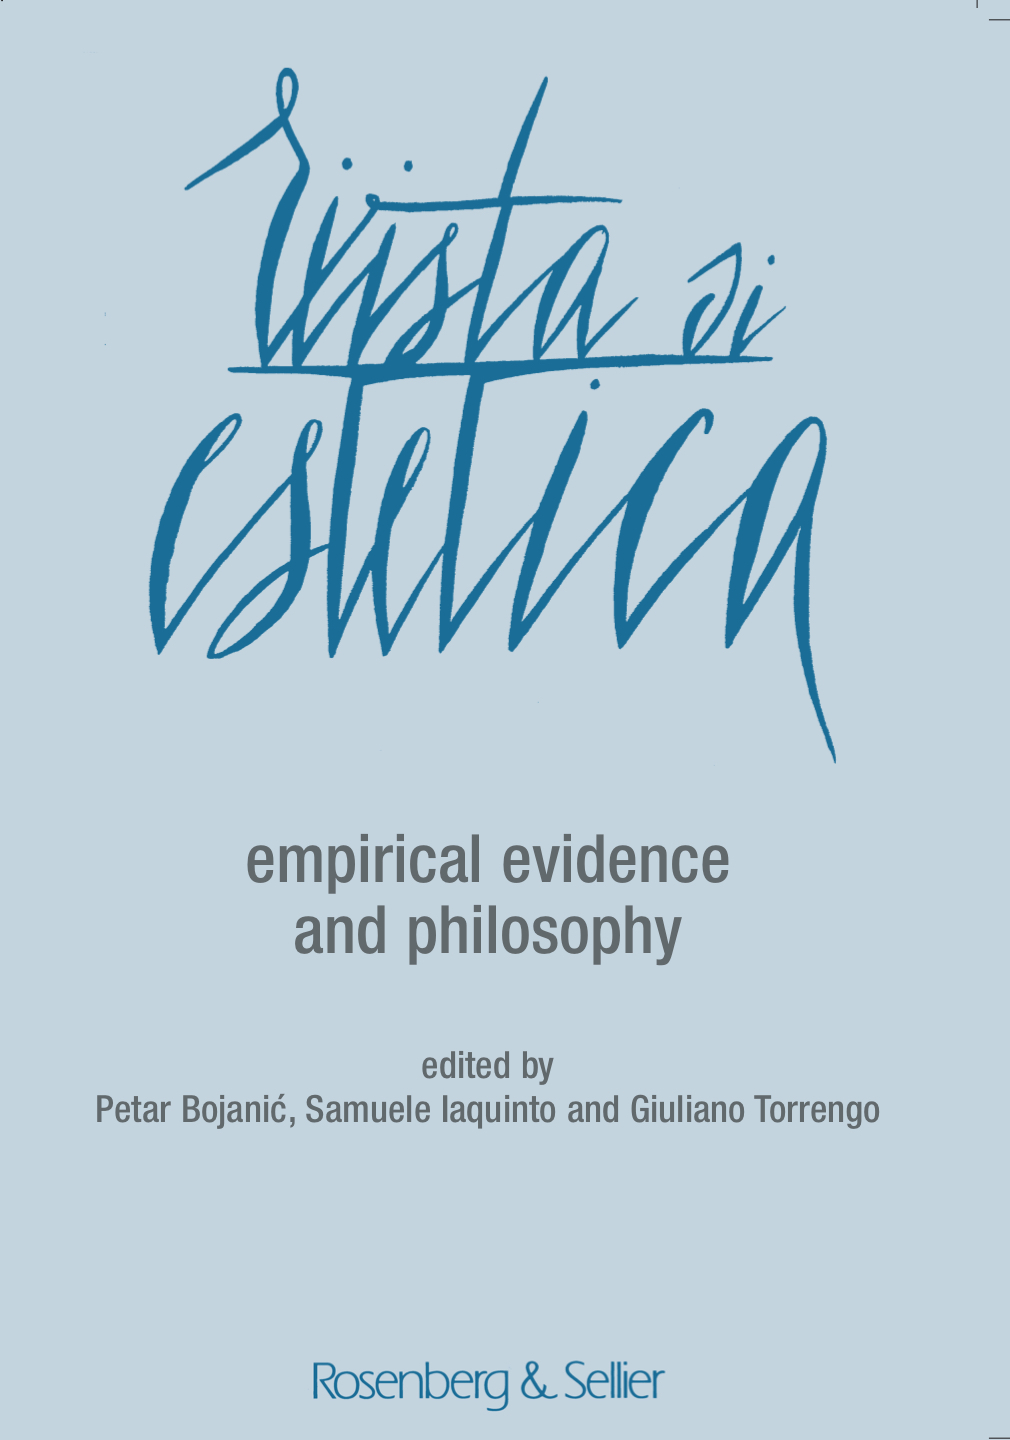 empirical evidence and philosophy cover